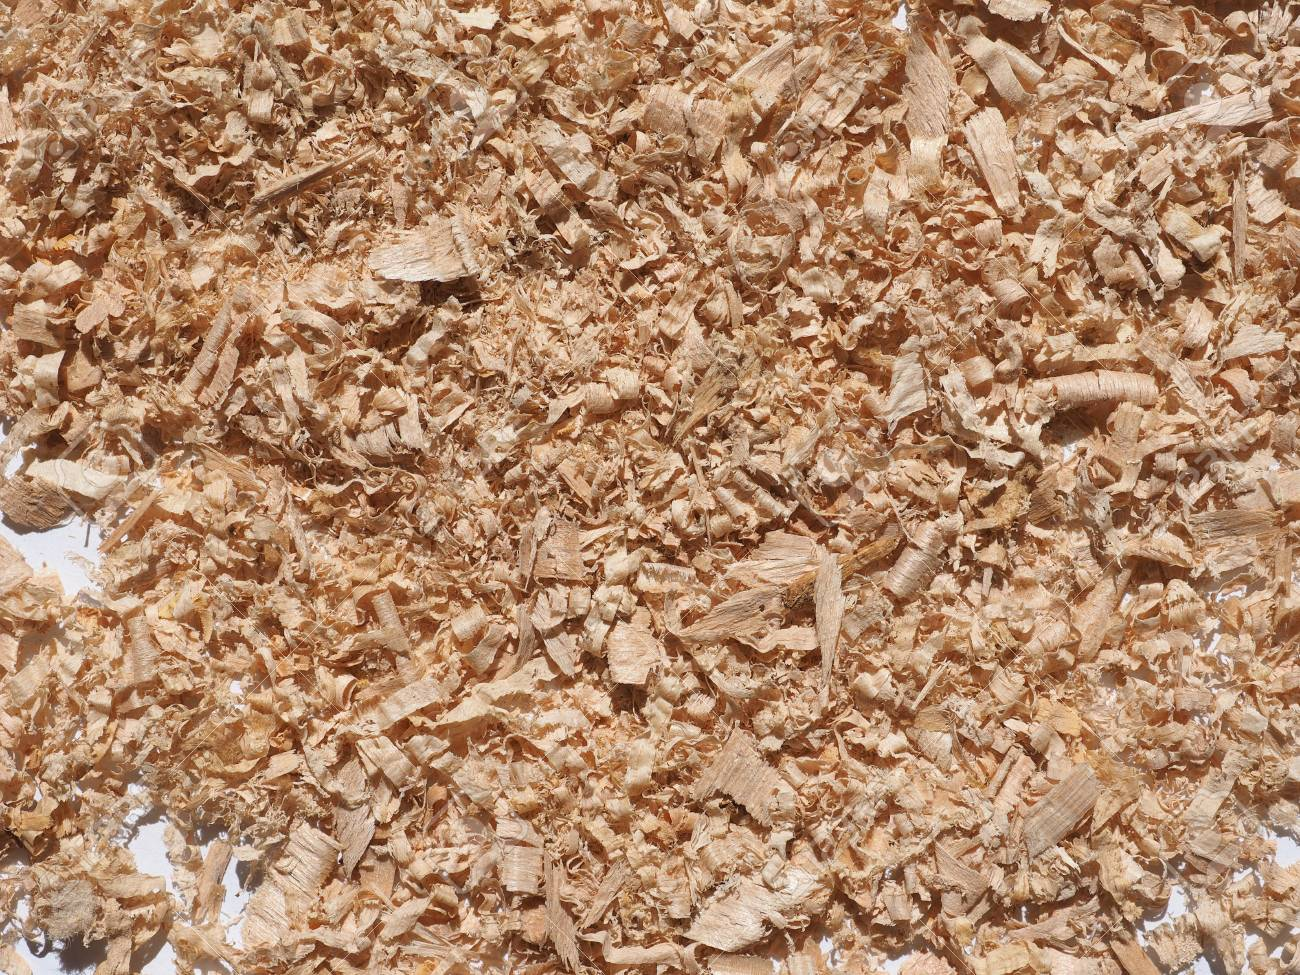 Sawdust Wood Dust Byproduct Or Waste Product Of Woodworking Operations..  Stock Photo, Picture And Royalty Free Image. Image 107780112.